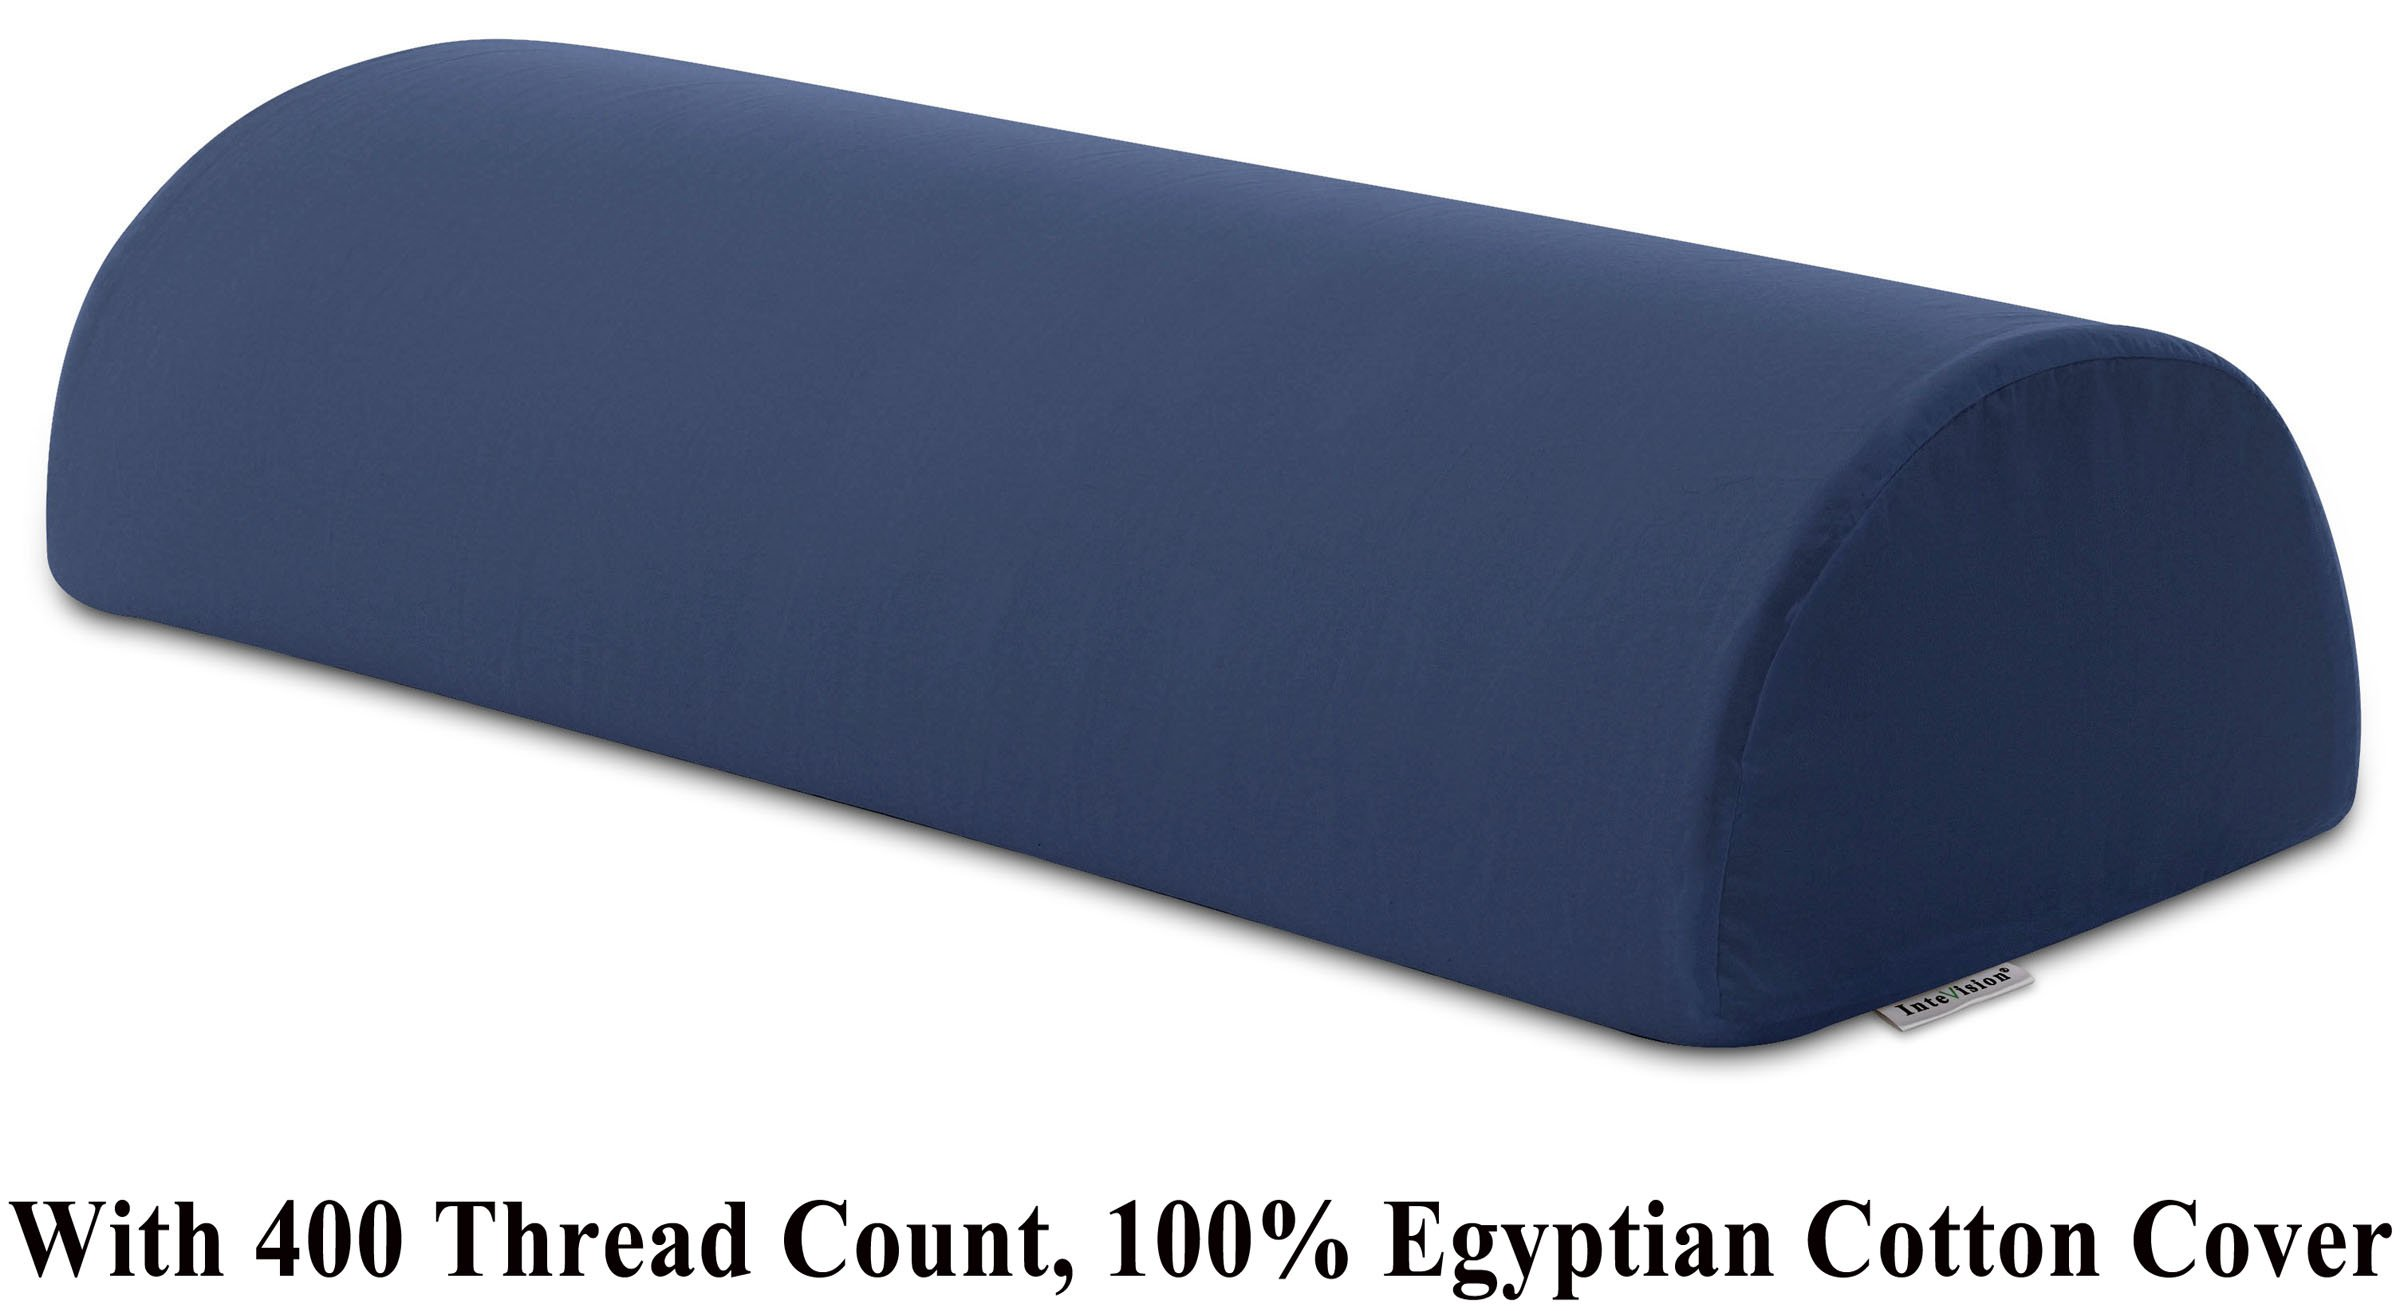 InteVision Four Position Support Pillow (20.5'' x 8'' x 4.5'') with, 400 Thread Count, 100% Egyptian Cotton Cover